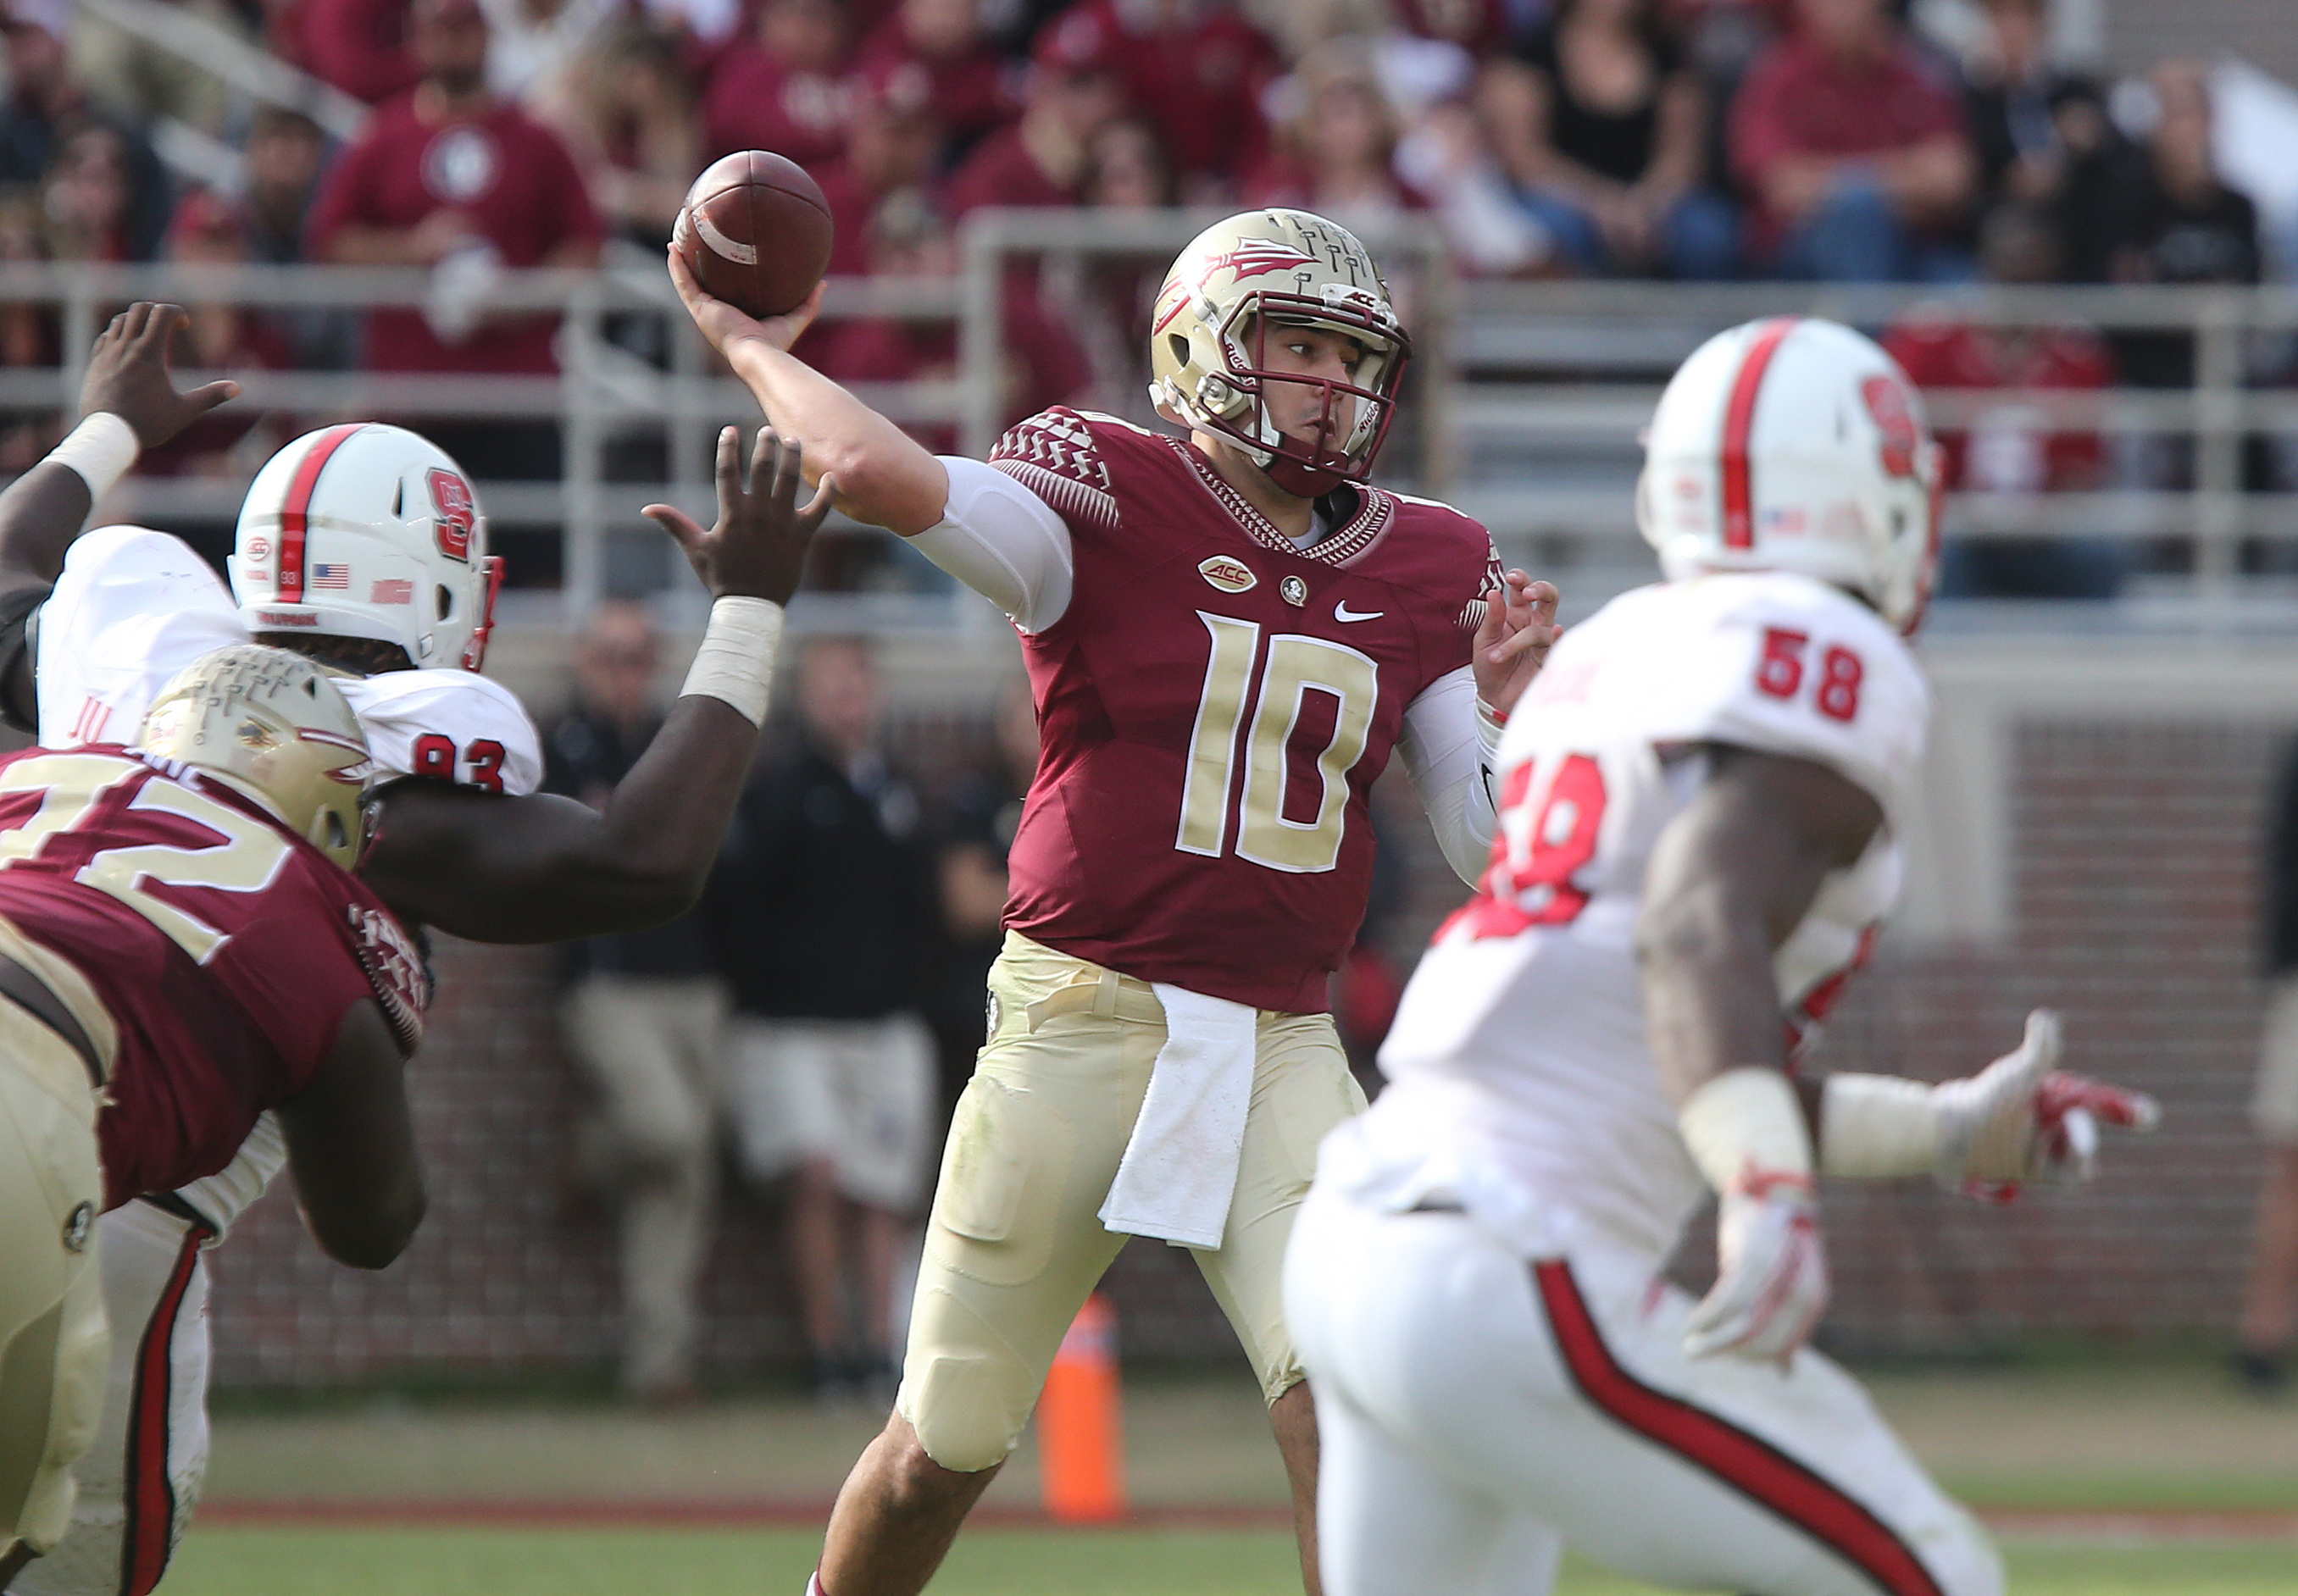 Florida State's Sean Maguire (10) attempts a pass against the North Carolina State defense in the second quarter of an NCAA college football game, Saturday, Nov. 14, 2015, in Tallahassee, Fla. (AP Photo/Steve Cannon)